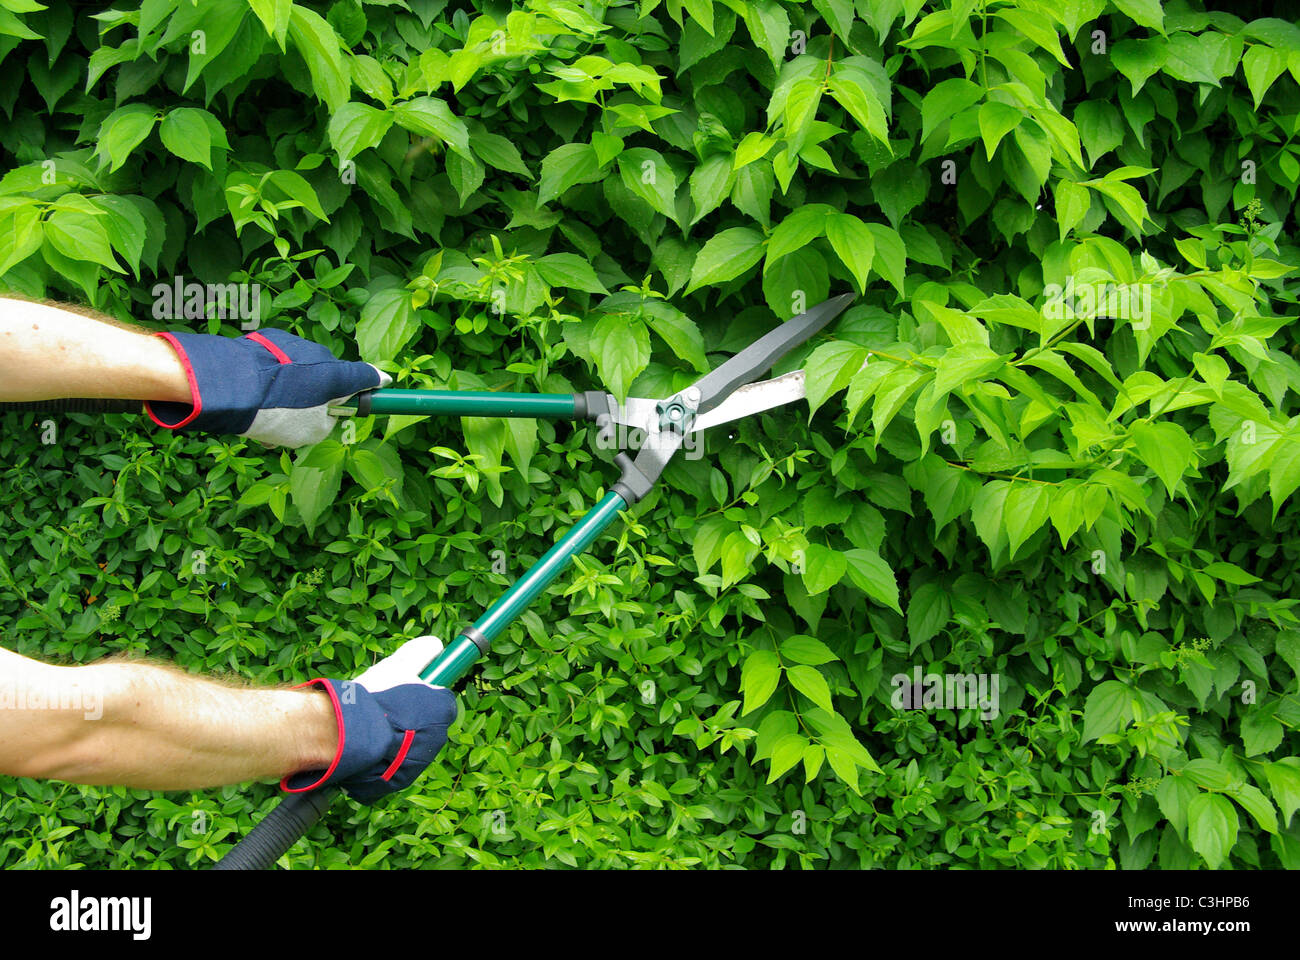 Hecke Schneiden Hecke Schneiden High Resolution Stock Photography And Images - Alamy